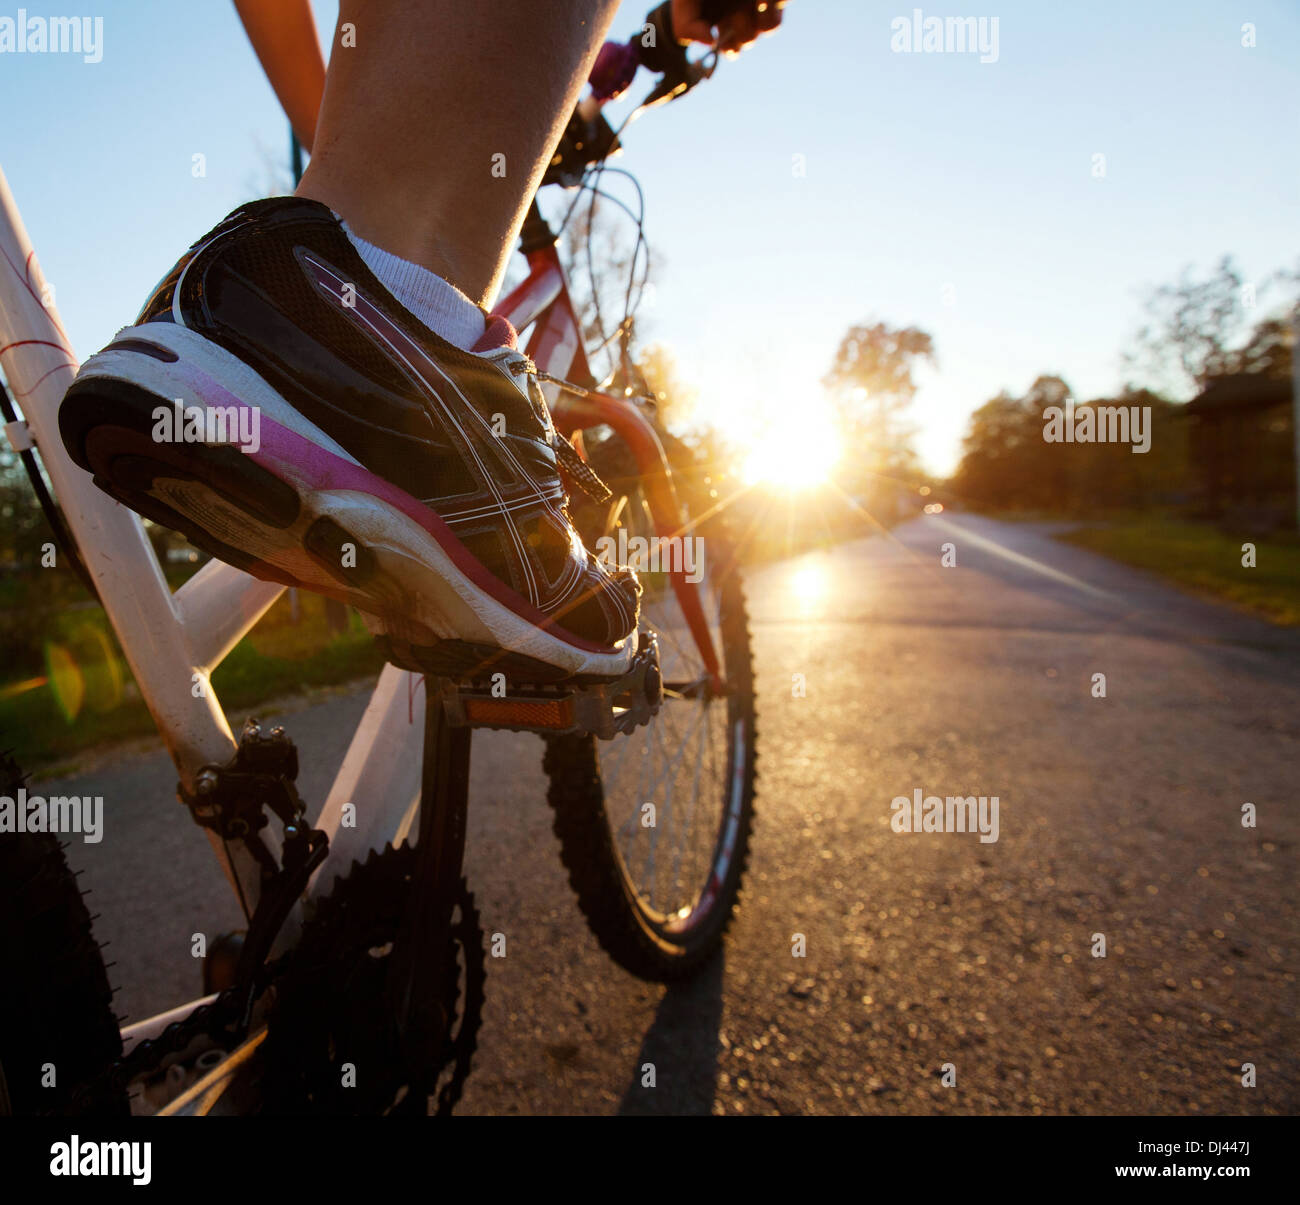 foot on pedal of bicycle - Stock Image